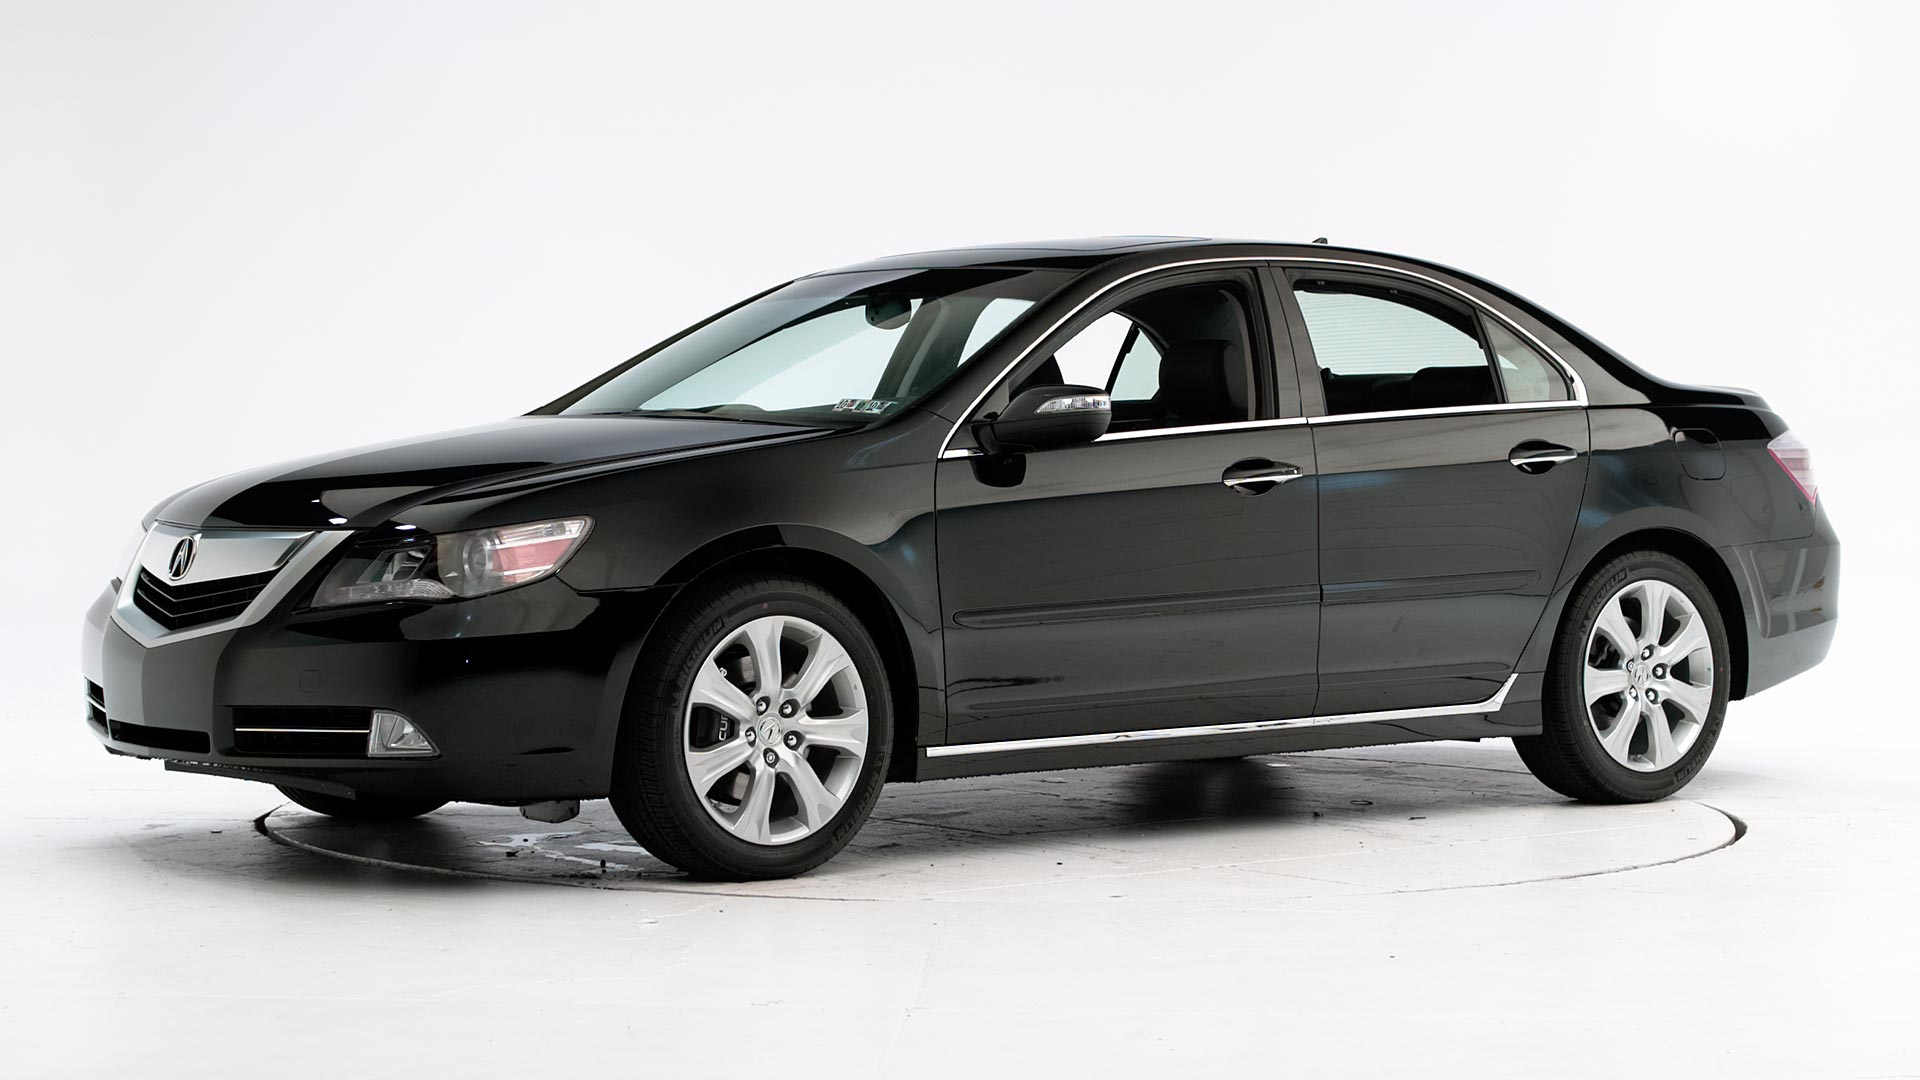 2010 Acura RL 4-door sedan